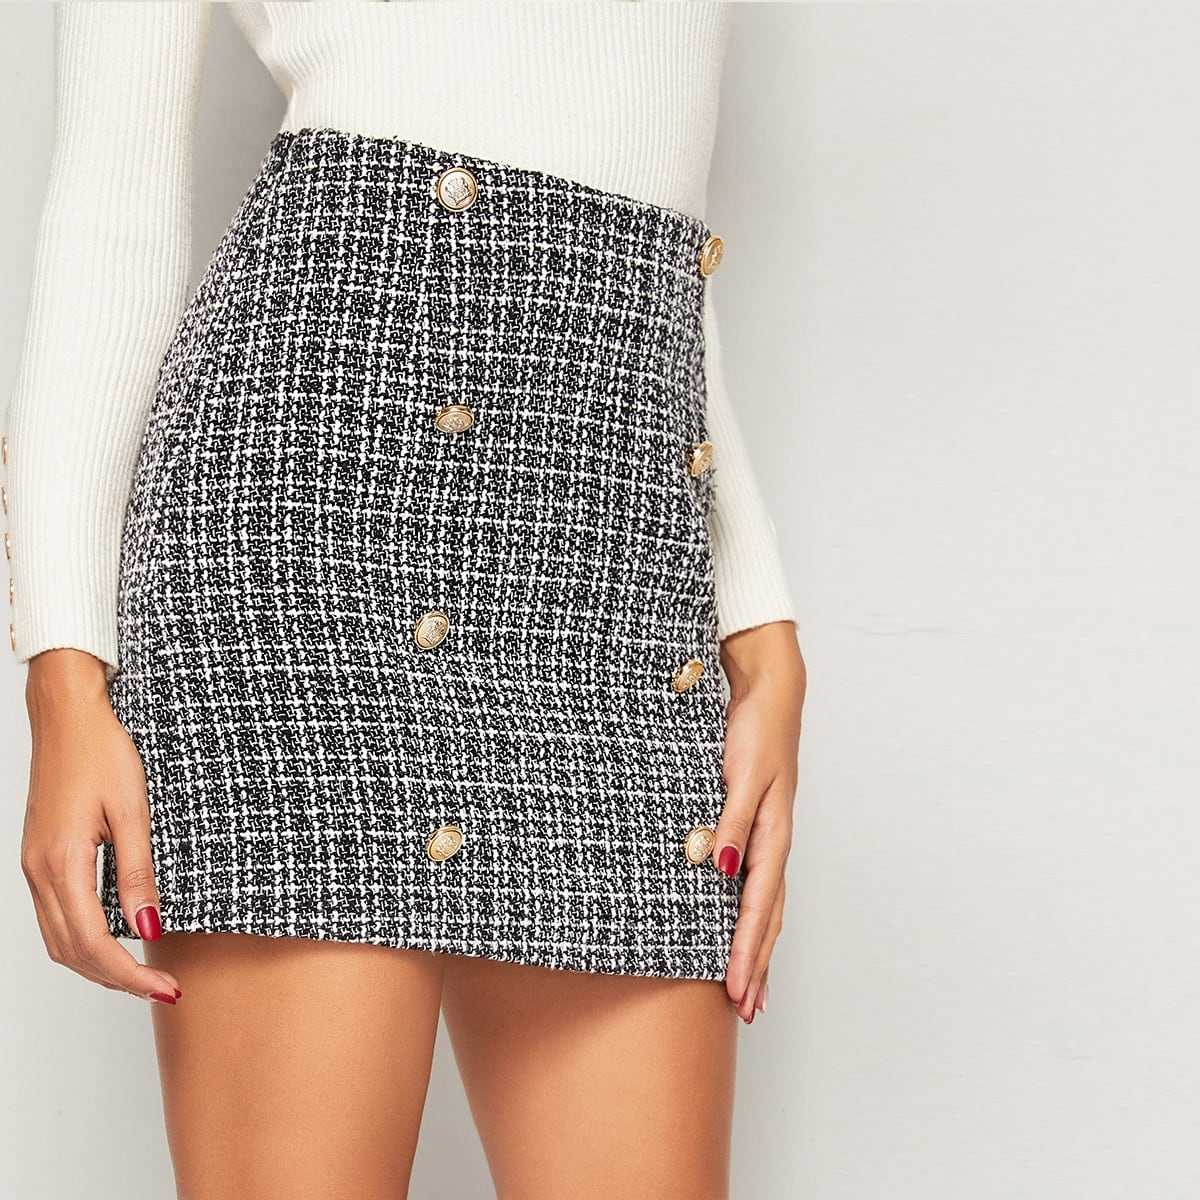 Double Breasted Tweed Skirt in Black and White by ROMWE on GOOFASH